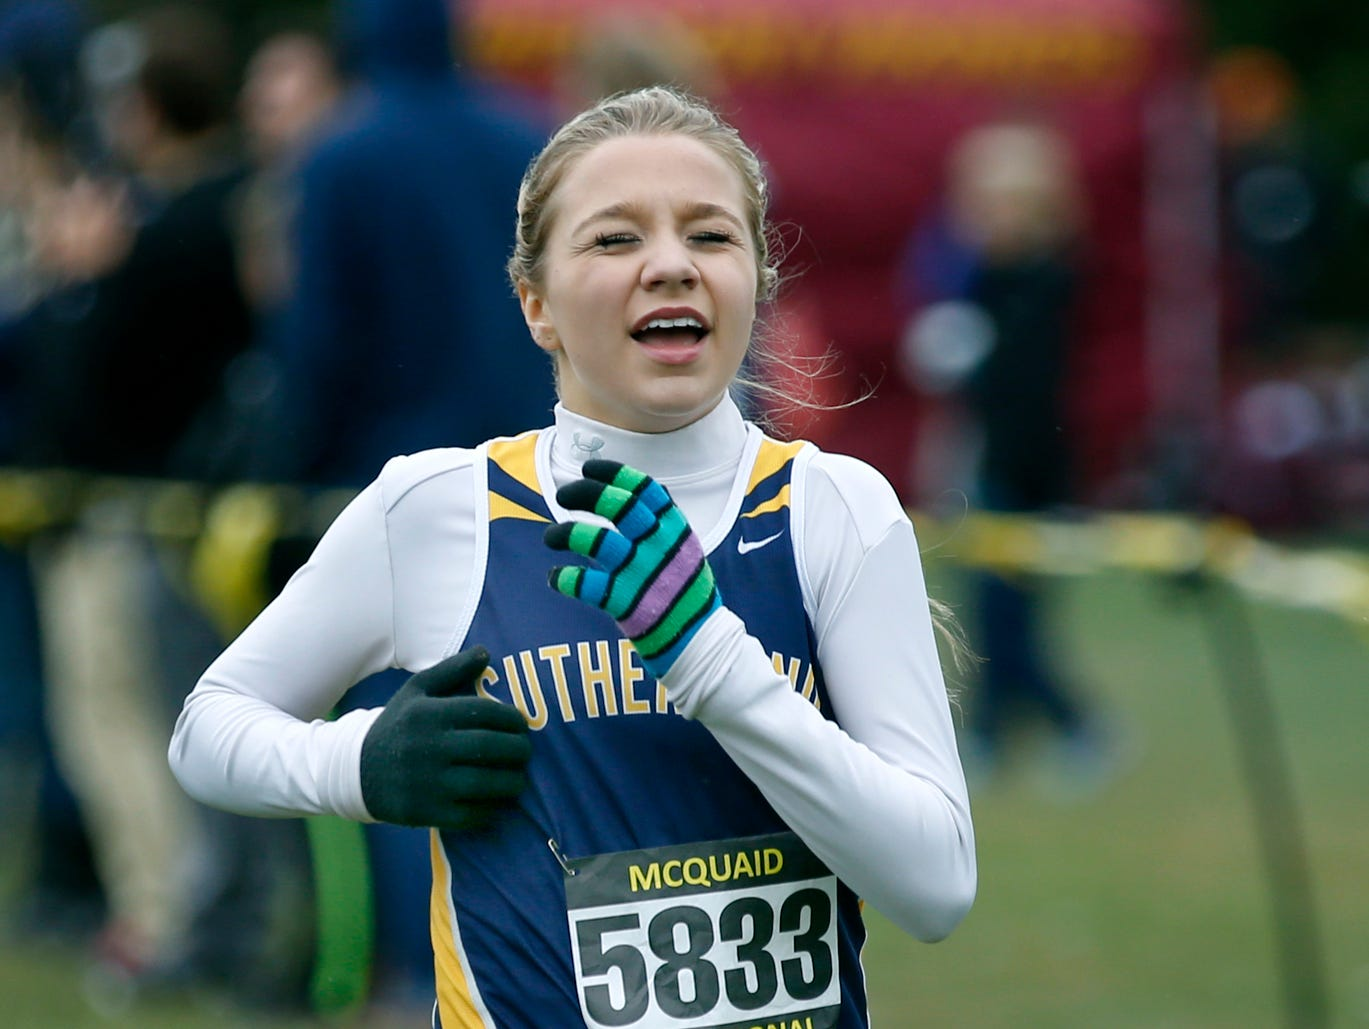 Pittsford Sutherland's Meredith Morse finished in 13th place in the Seeded AA group with a time of 18:25.00.